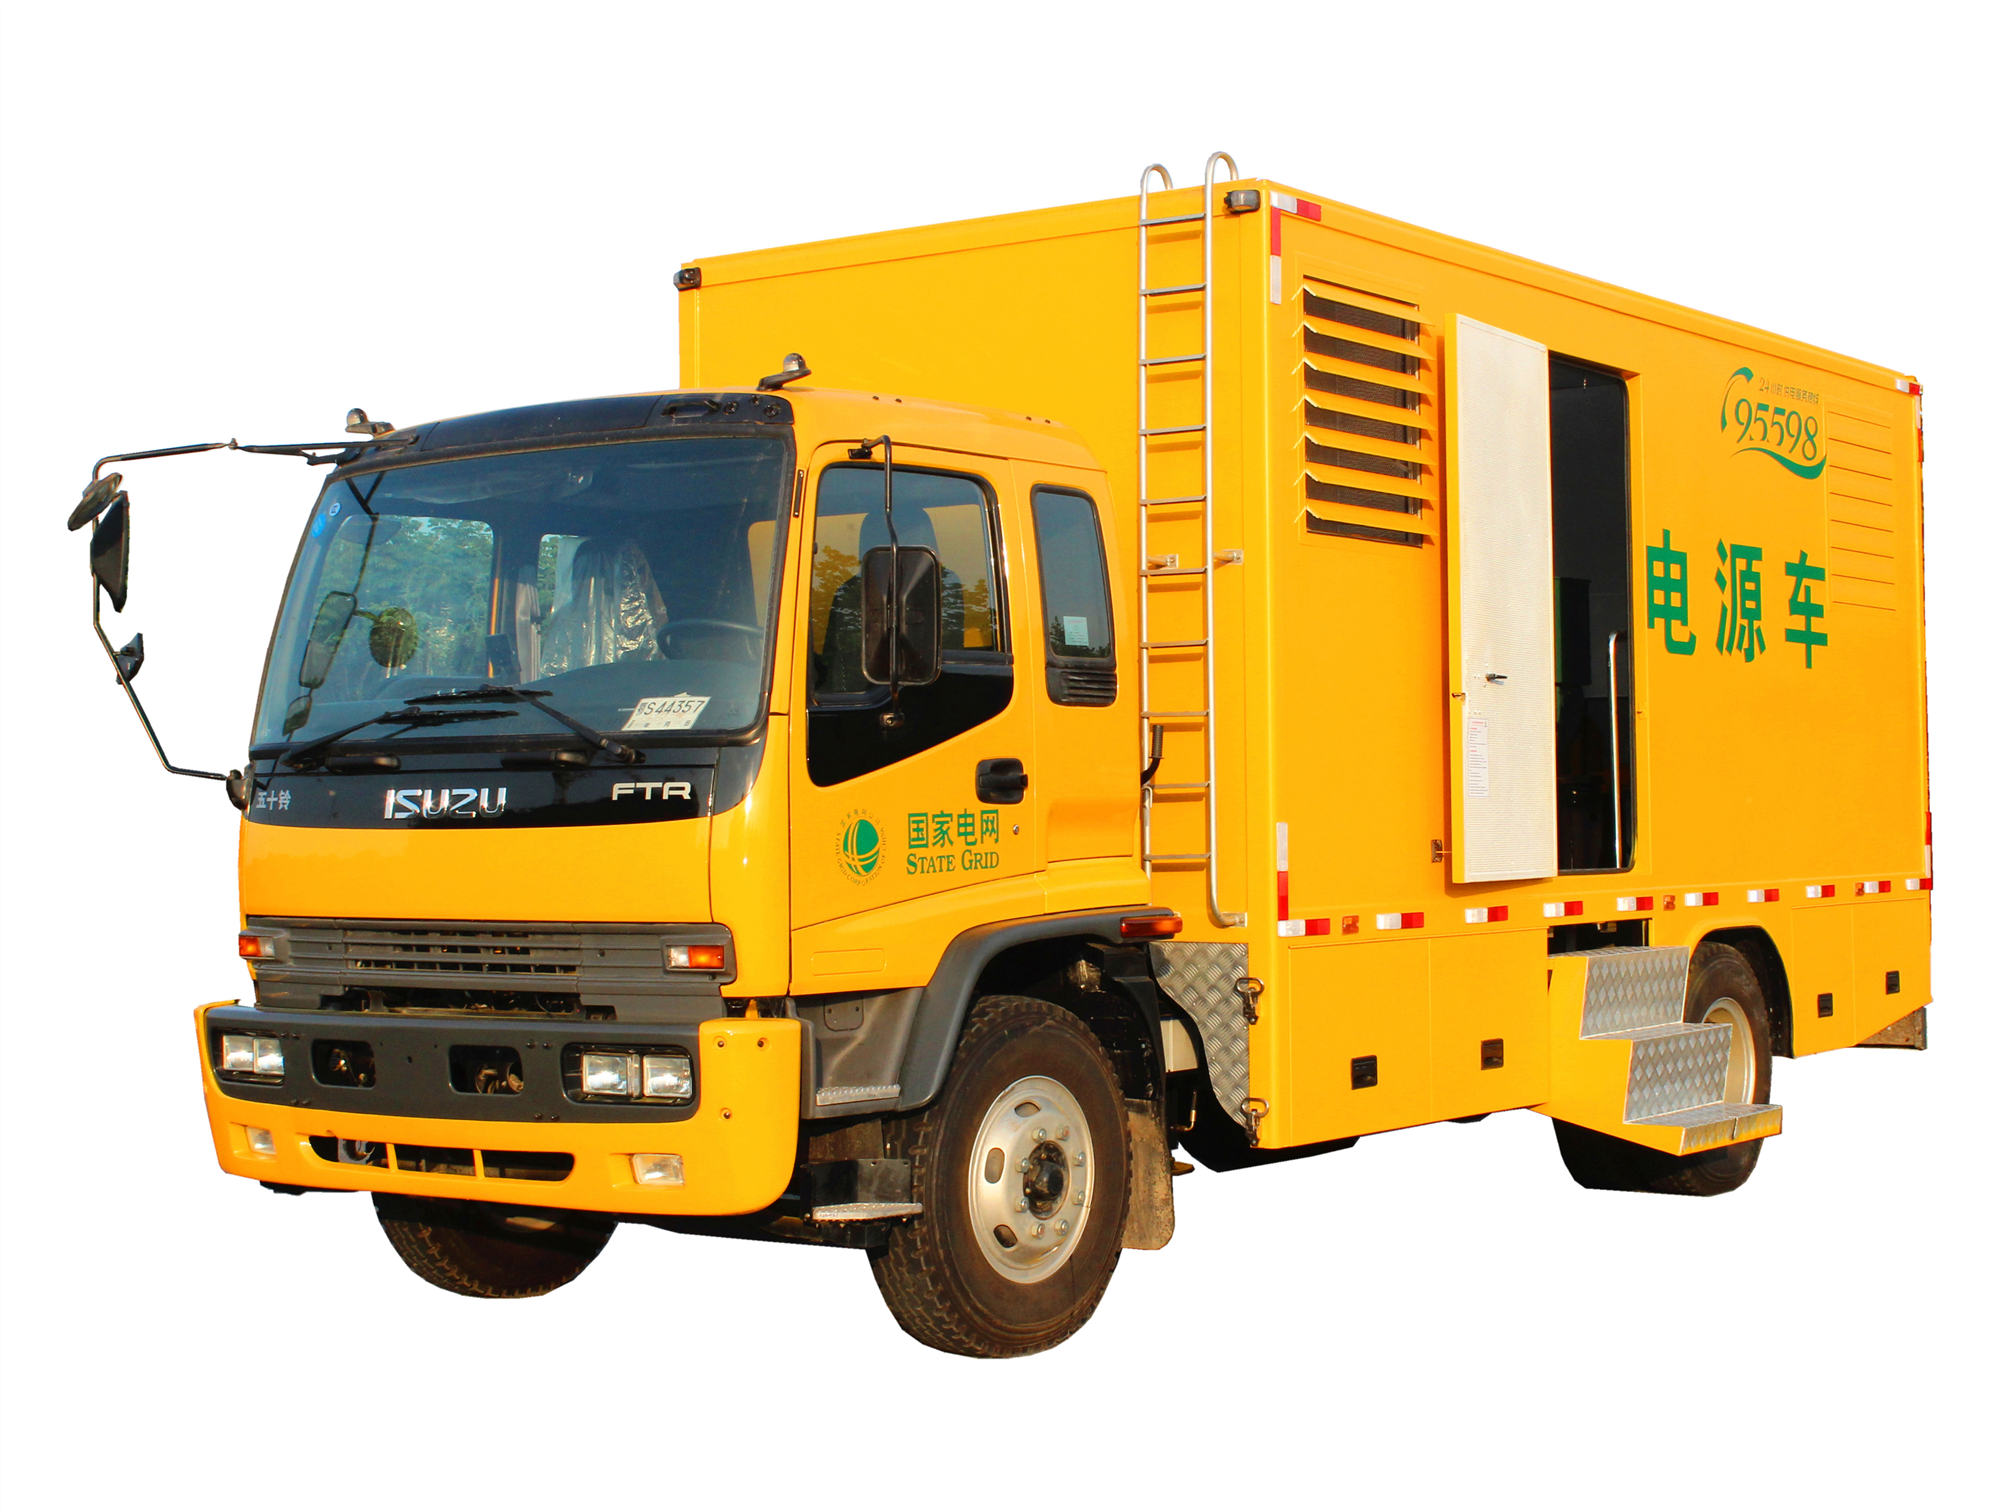 Isuzu maintenance mobile workshop trucks